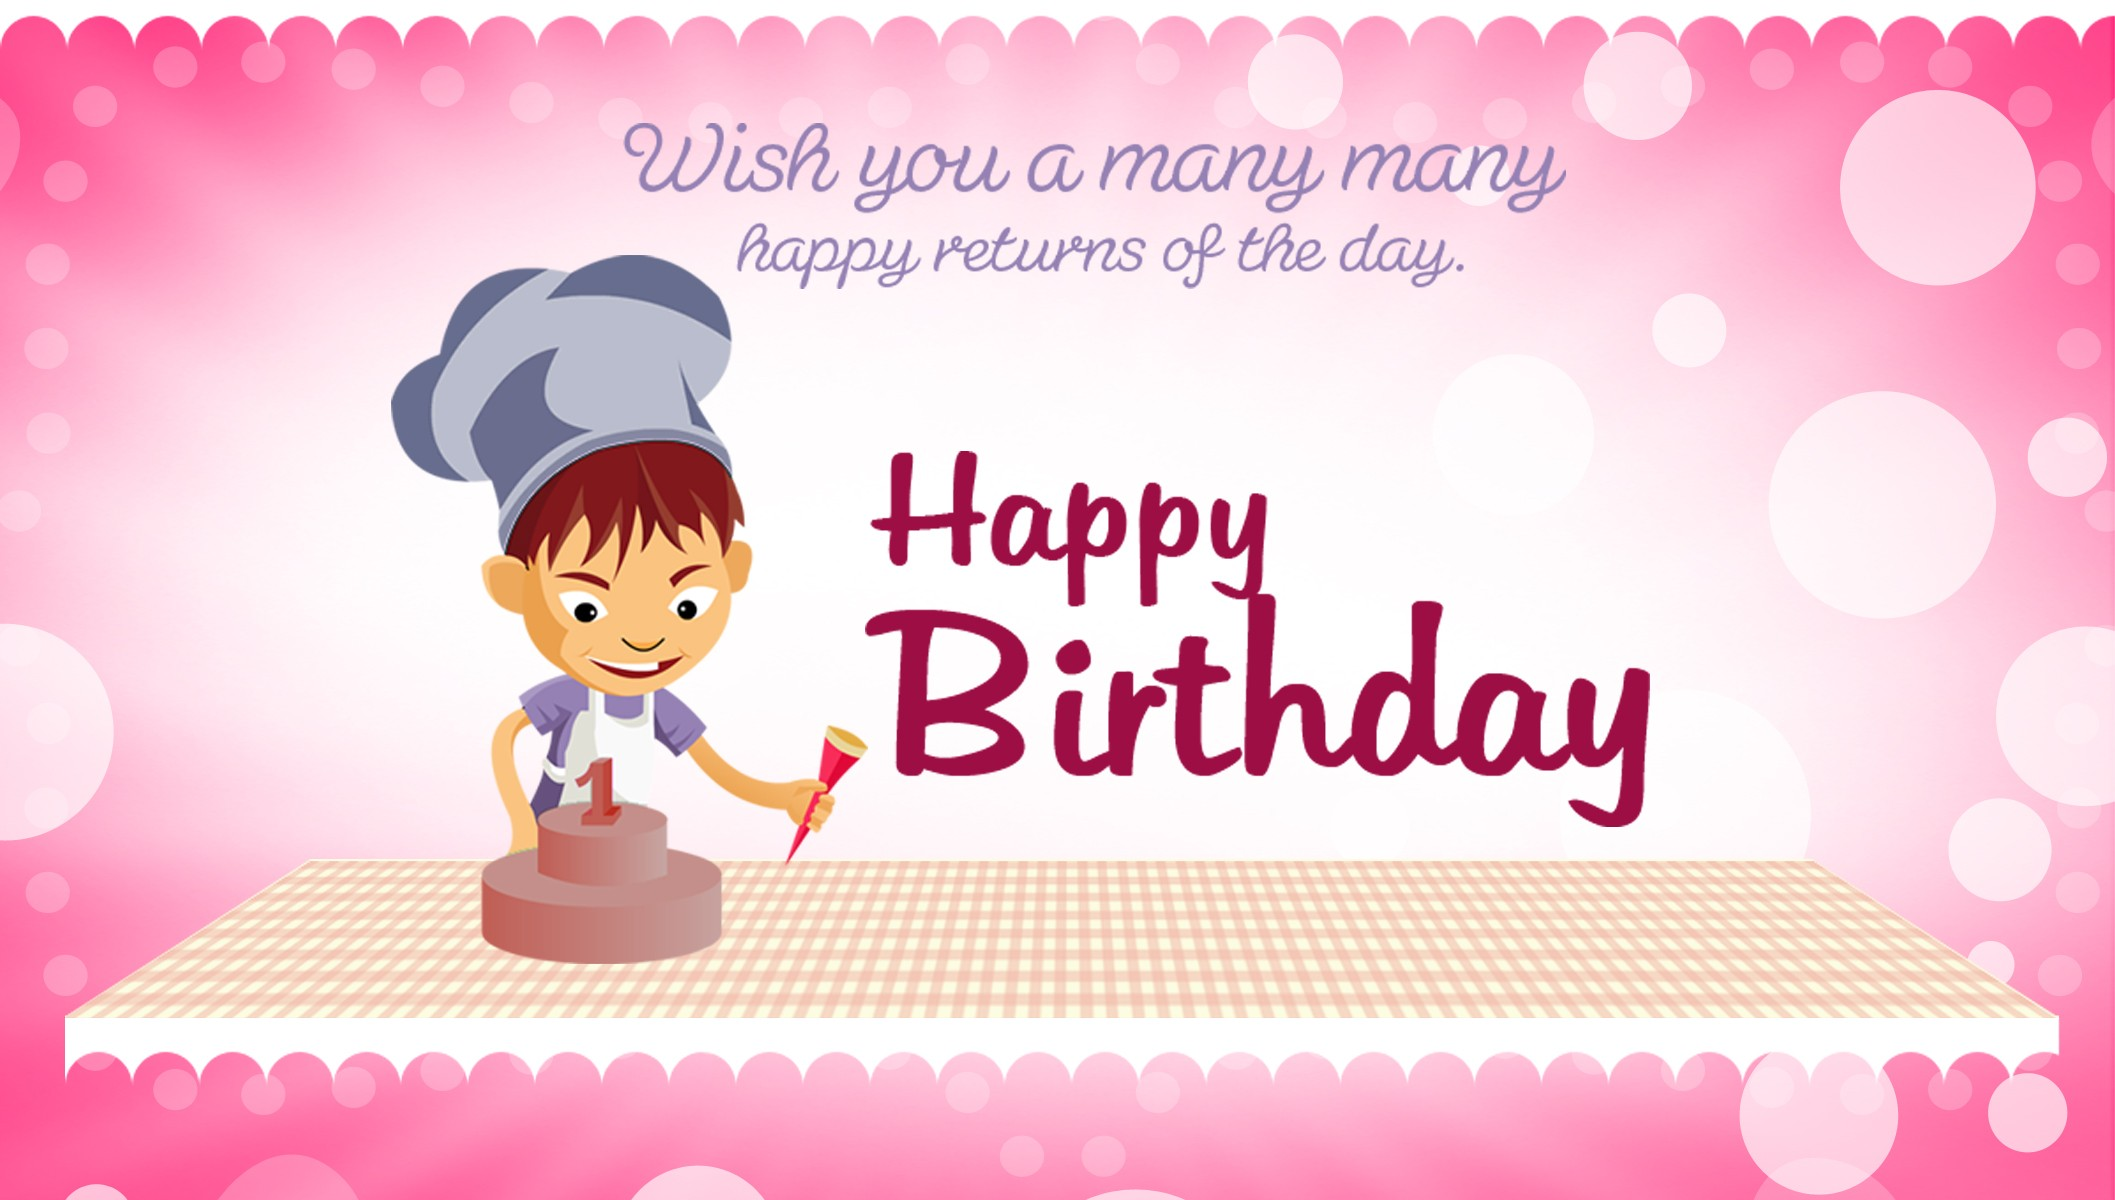 Happy Birthday Wishes Messages For Boyfriend And Girlfriend Daily Roabox